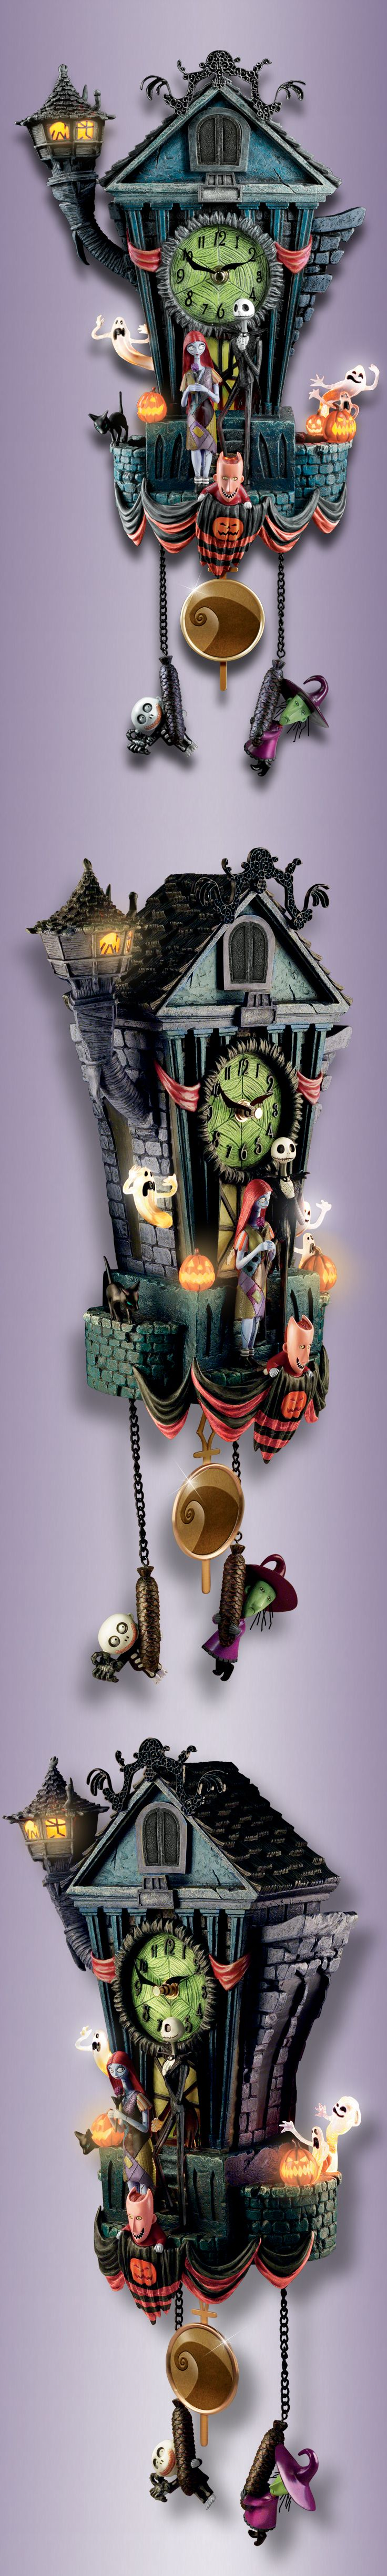 The Nightmare Before Christmas Cuckoo Clock | Cuckoo clocks ...